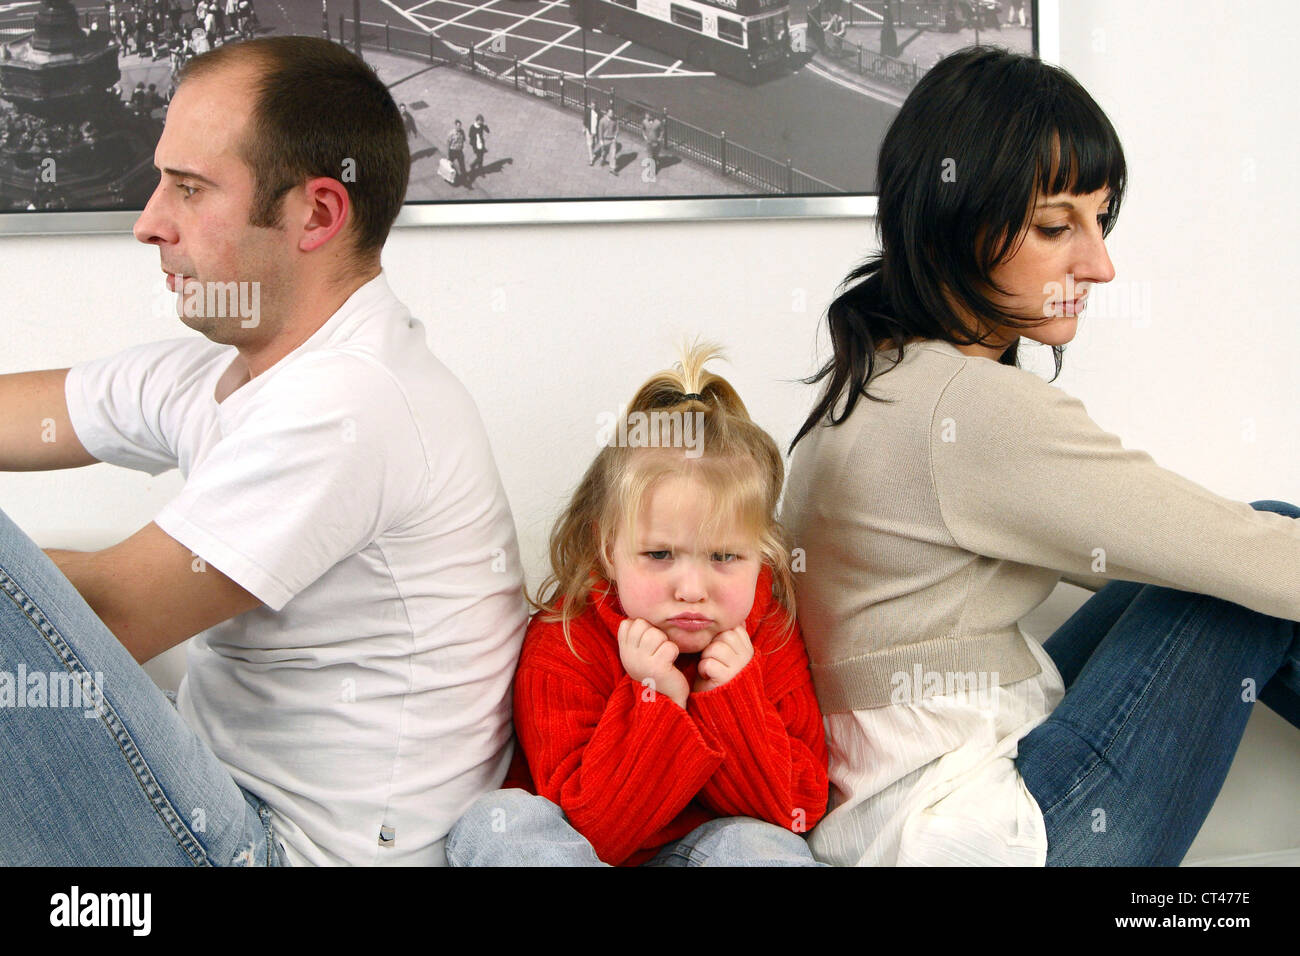 CONFLICT IN A FAMILY - Stock Image